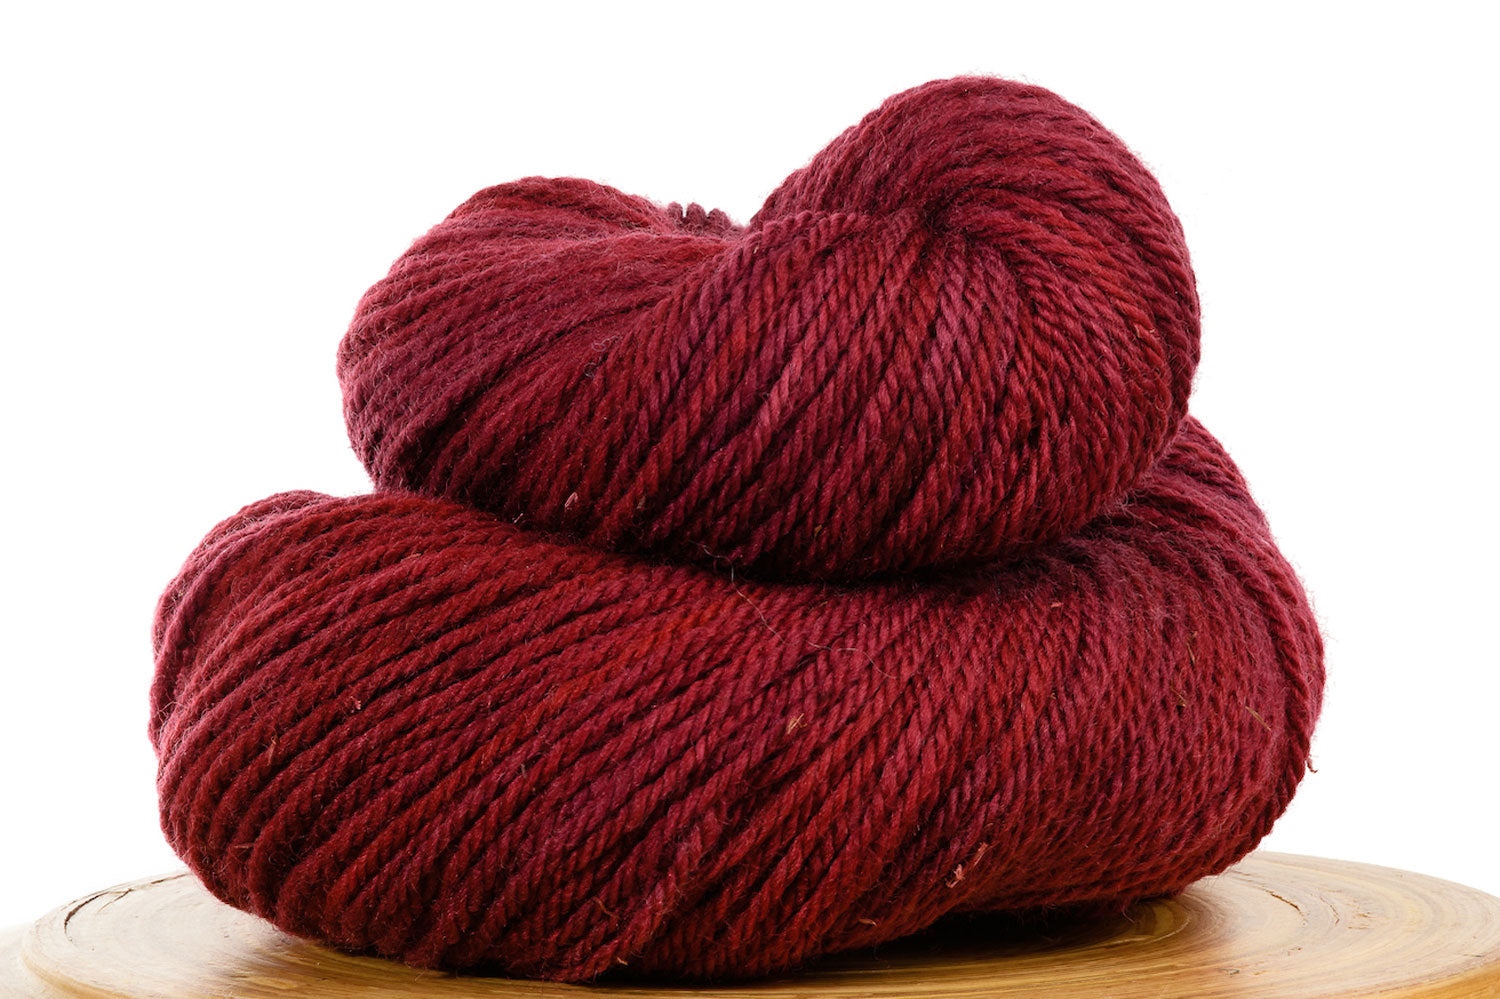 Canasta - burgundy red semi-solid hand-dyed DK weight wool